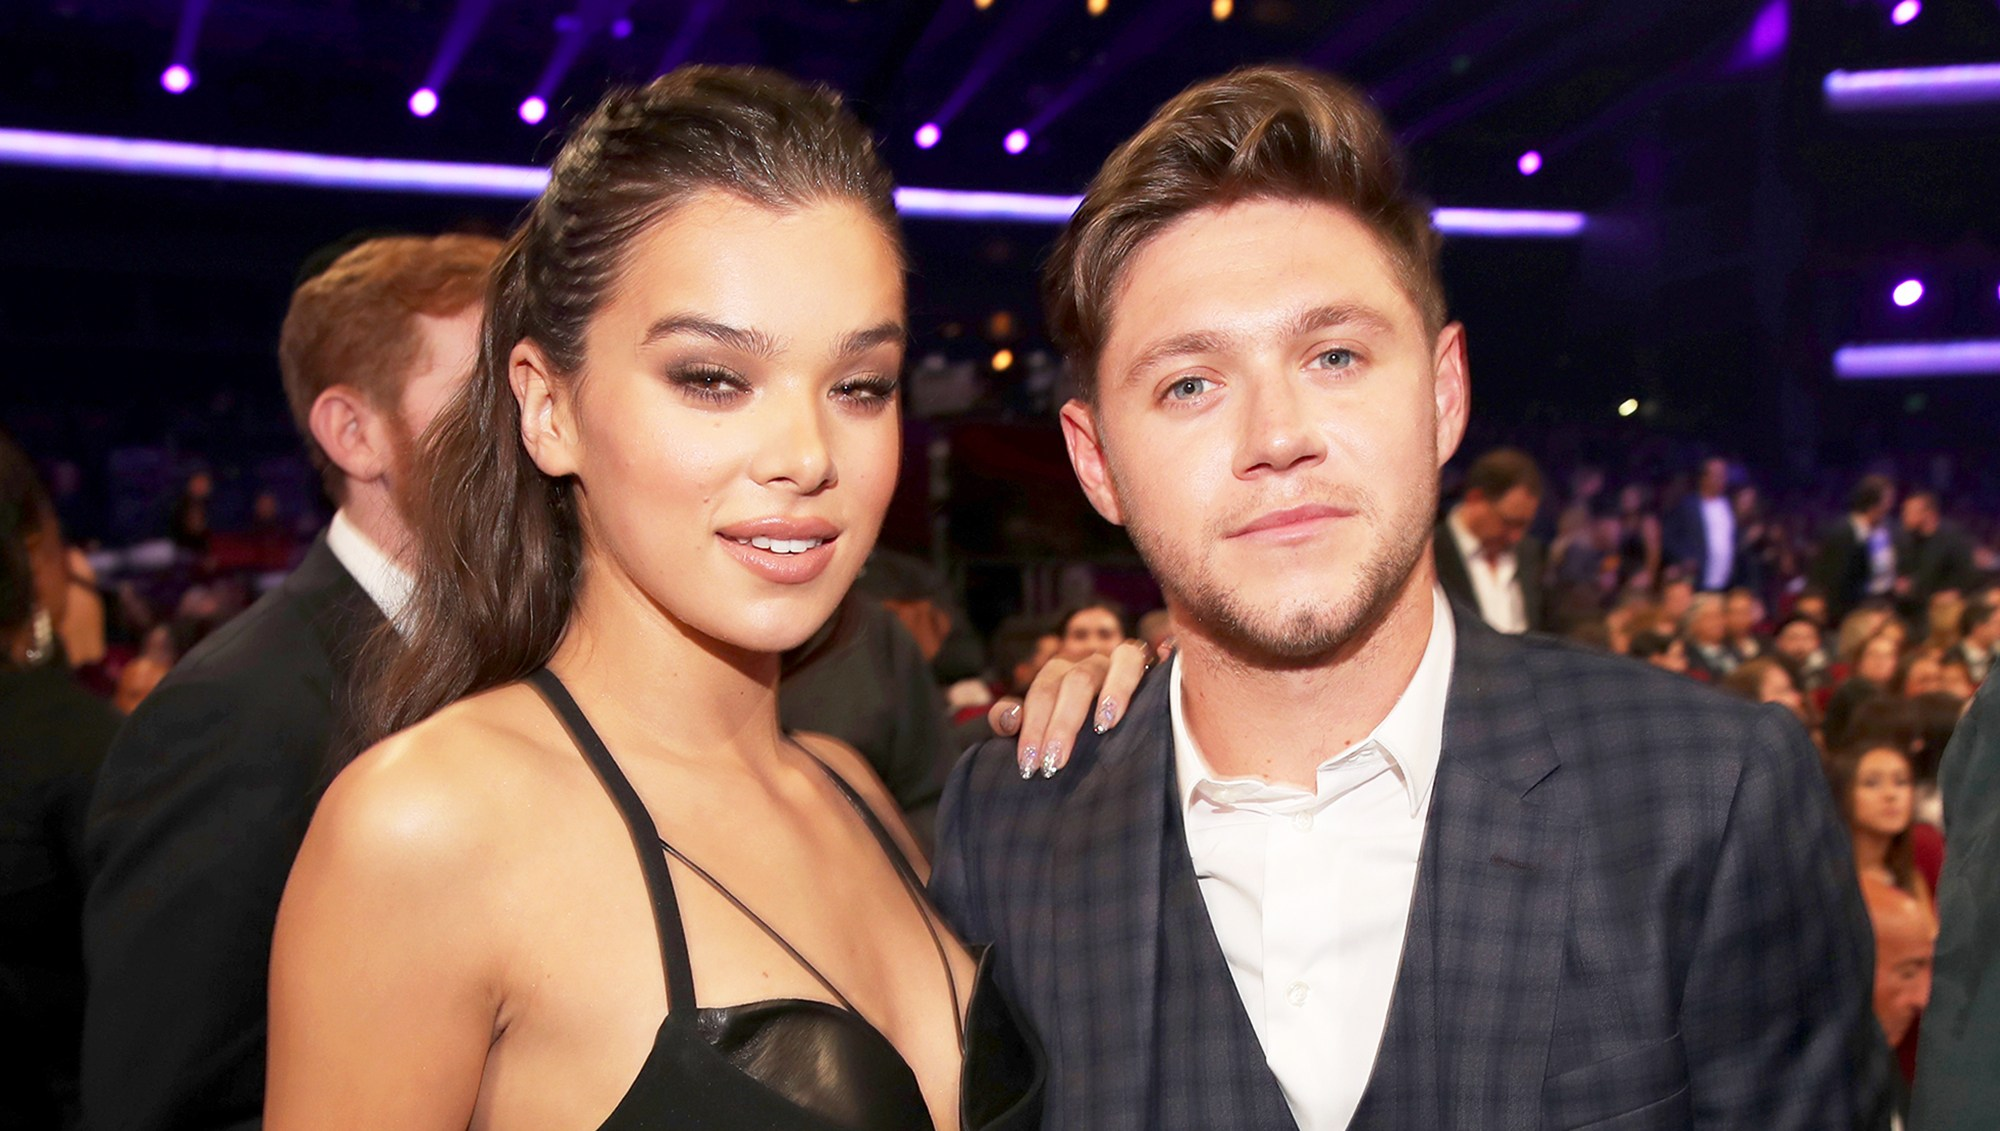 Hailee Steinfeld and Niall Horan during the 2017 American Music Awards at Microsoft Theater on November 19, 2017 in Los Angeles, California.